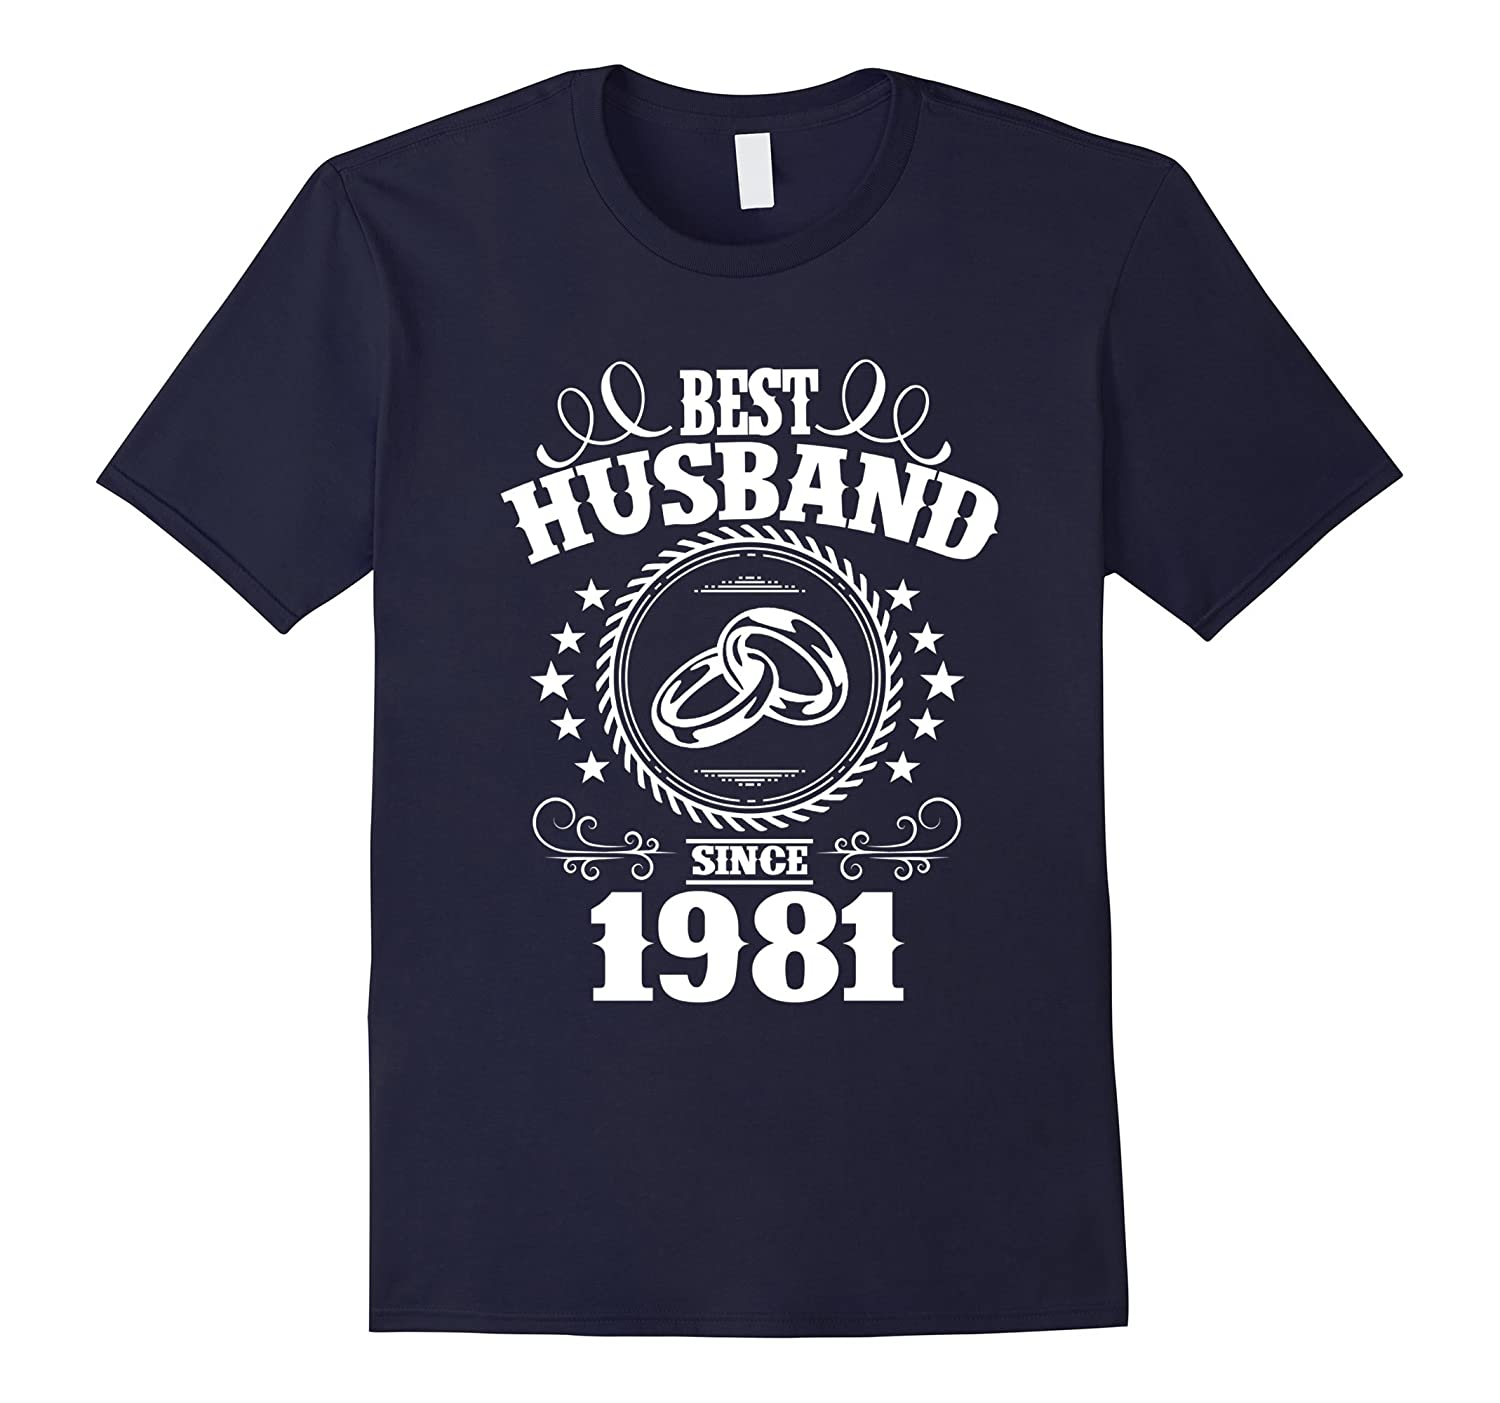 36th Wedding Anniversary T-Shirts For Husband From Wife-PL